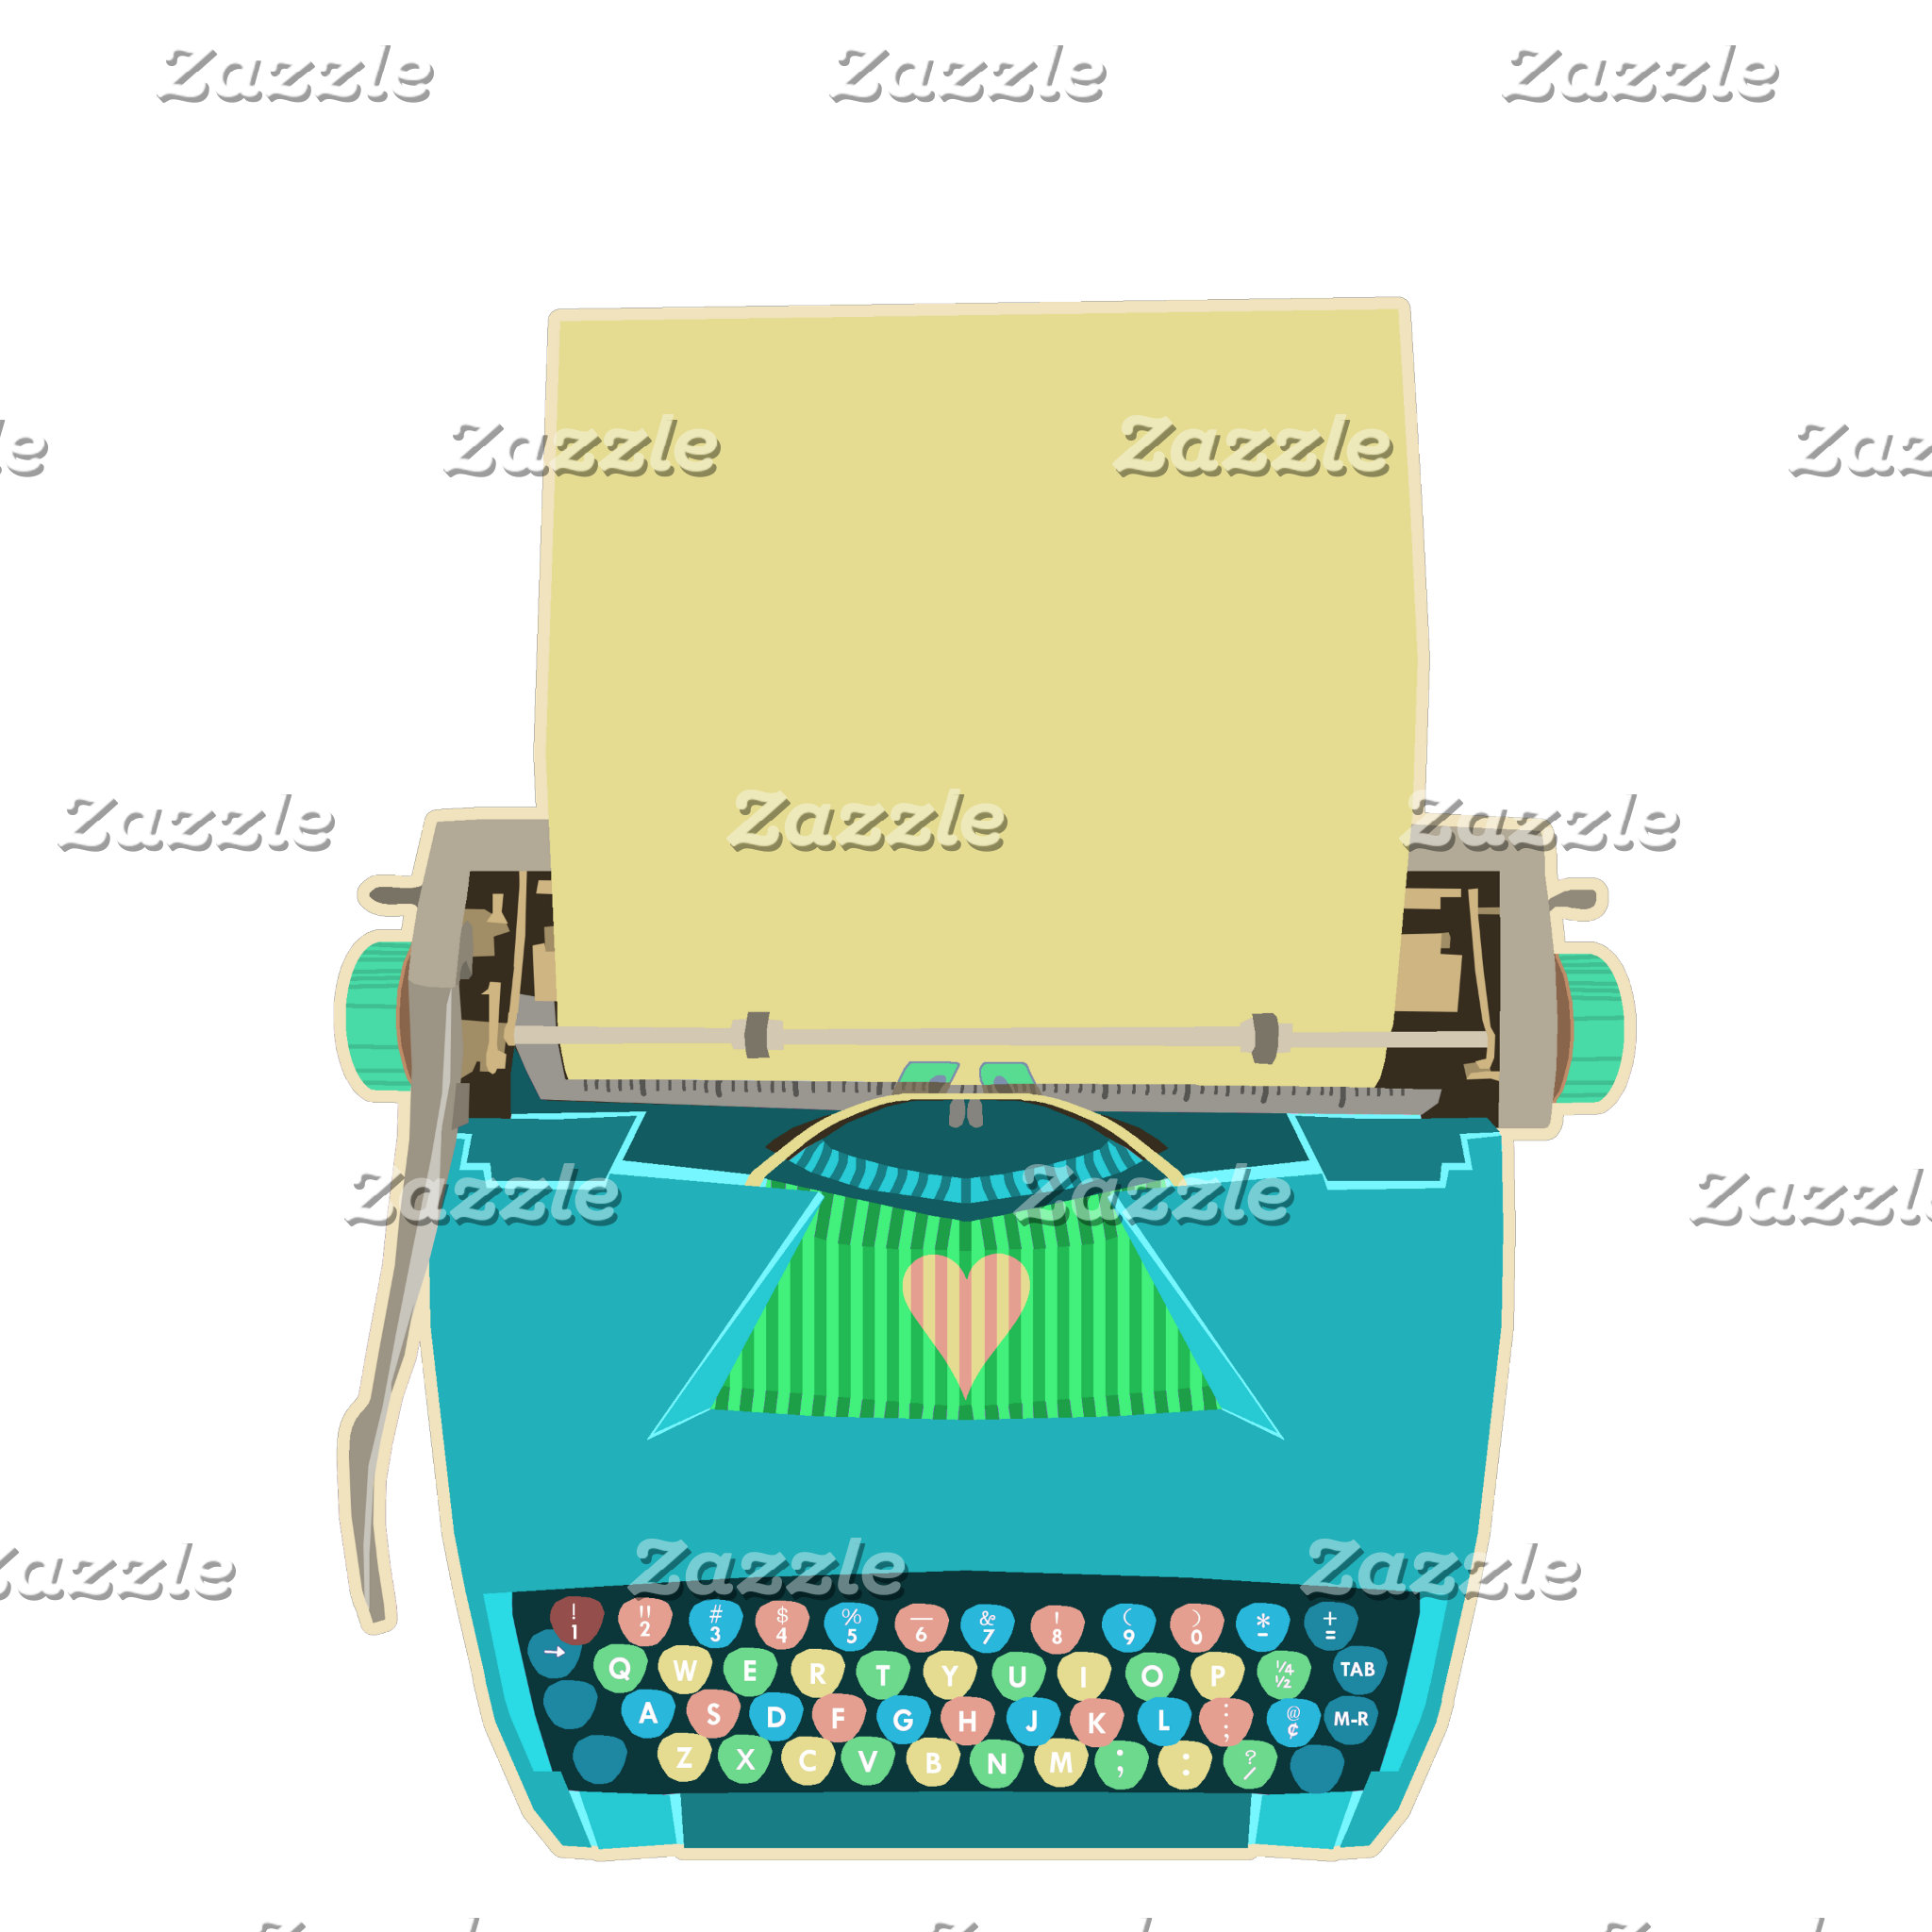 Personalized Typewriters